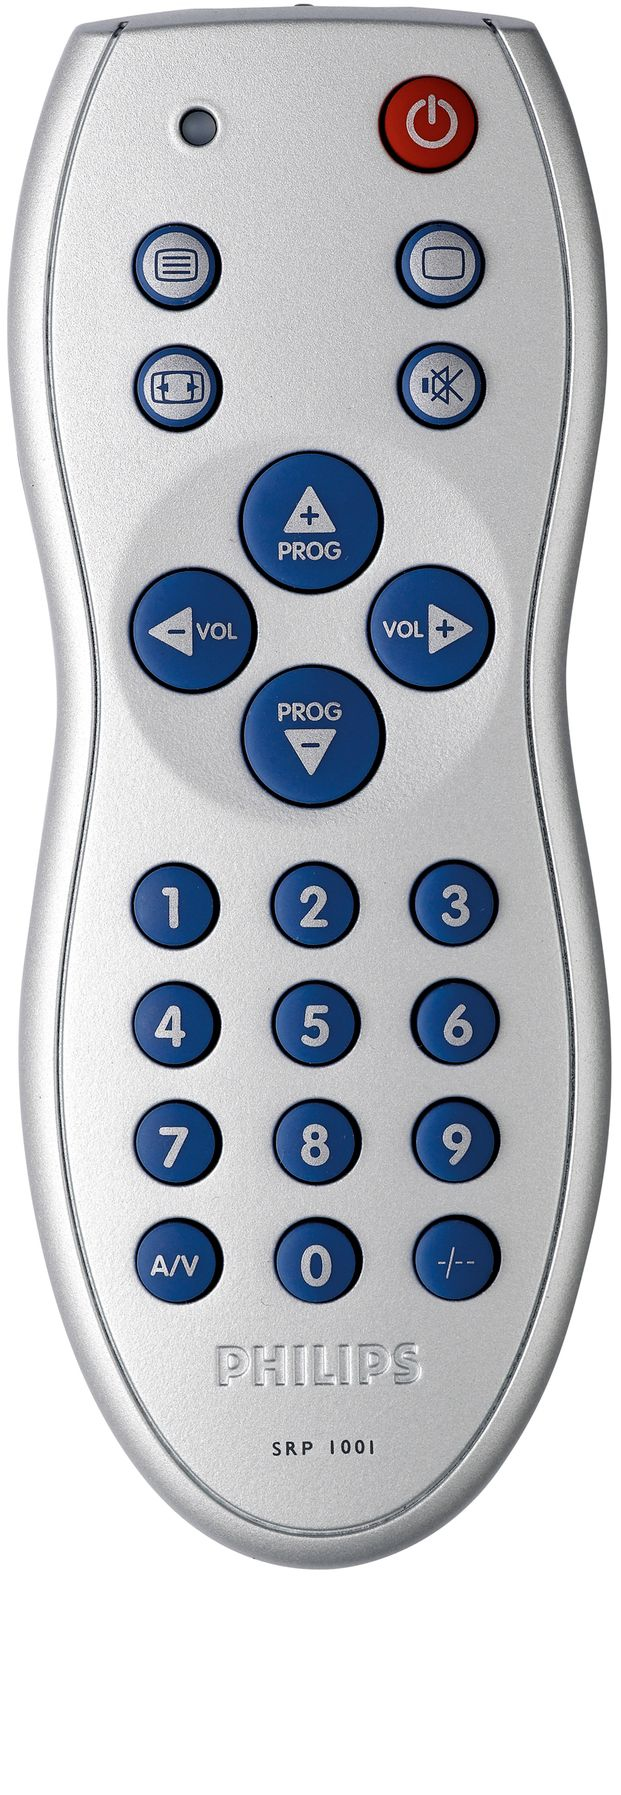 Philips Universal remote control SRP1101